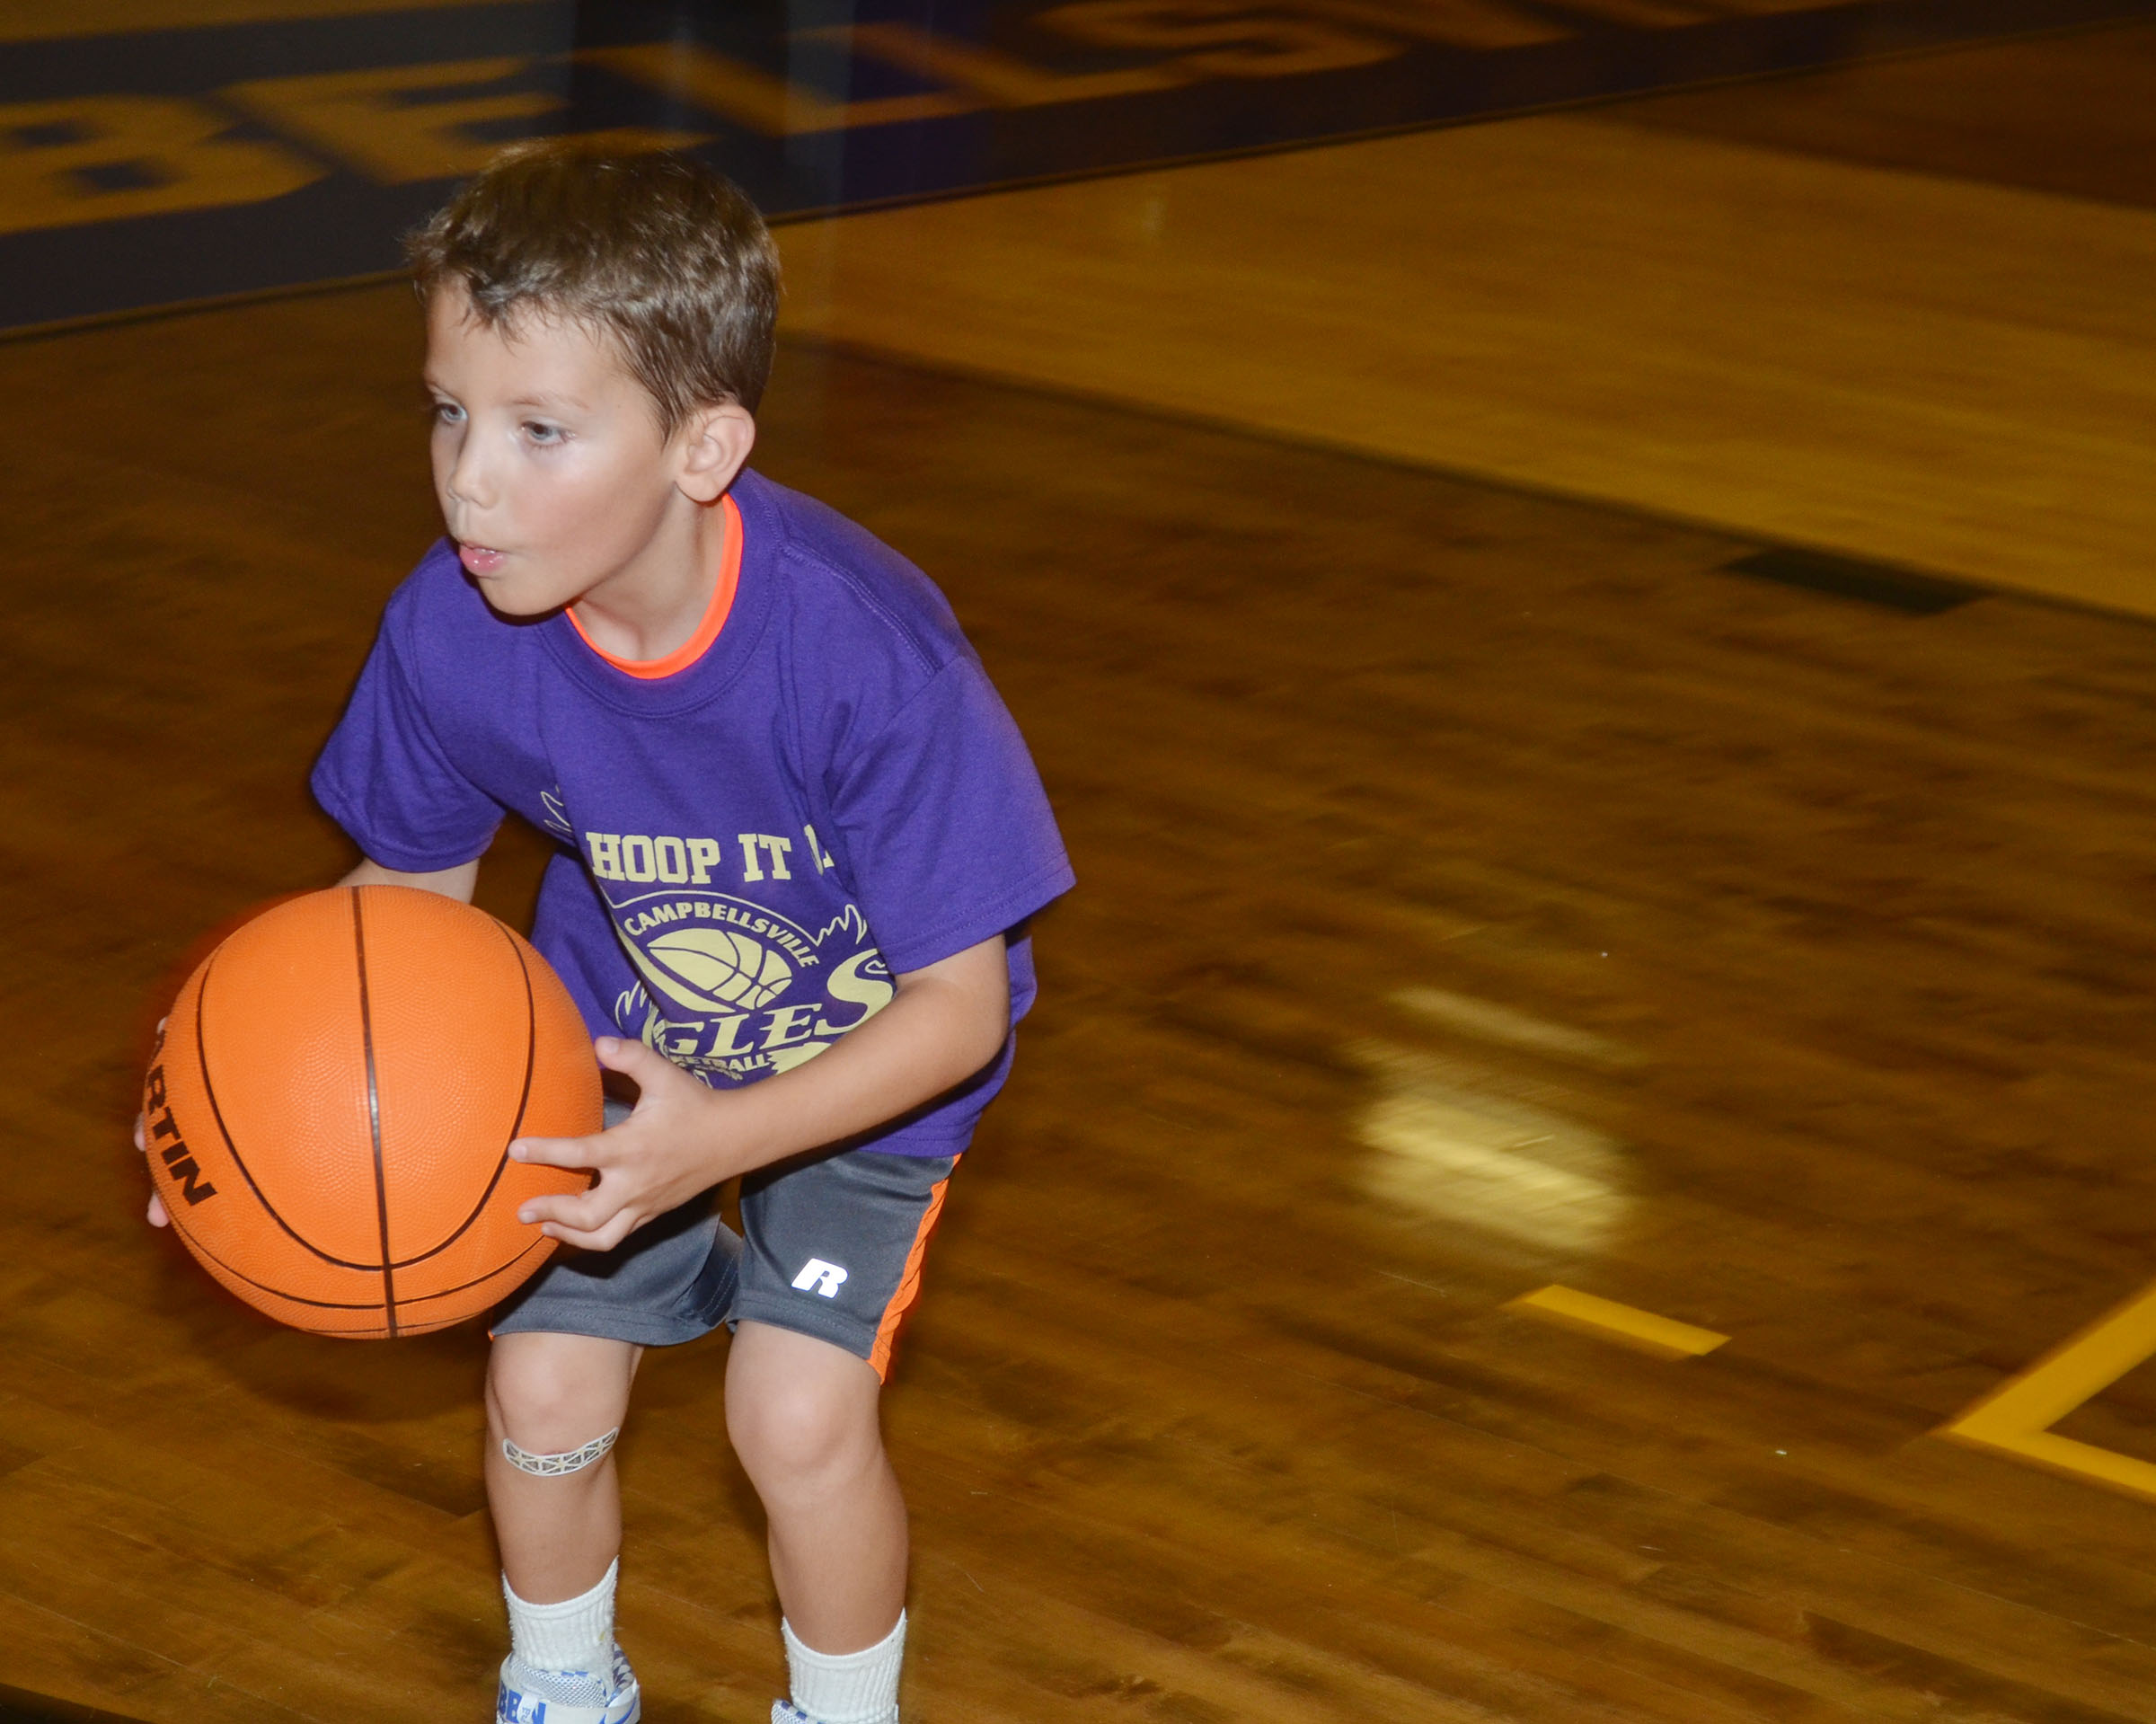 Owen Skaggs practices handling the ball.